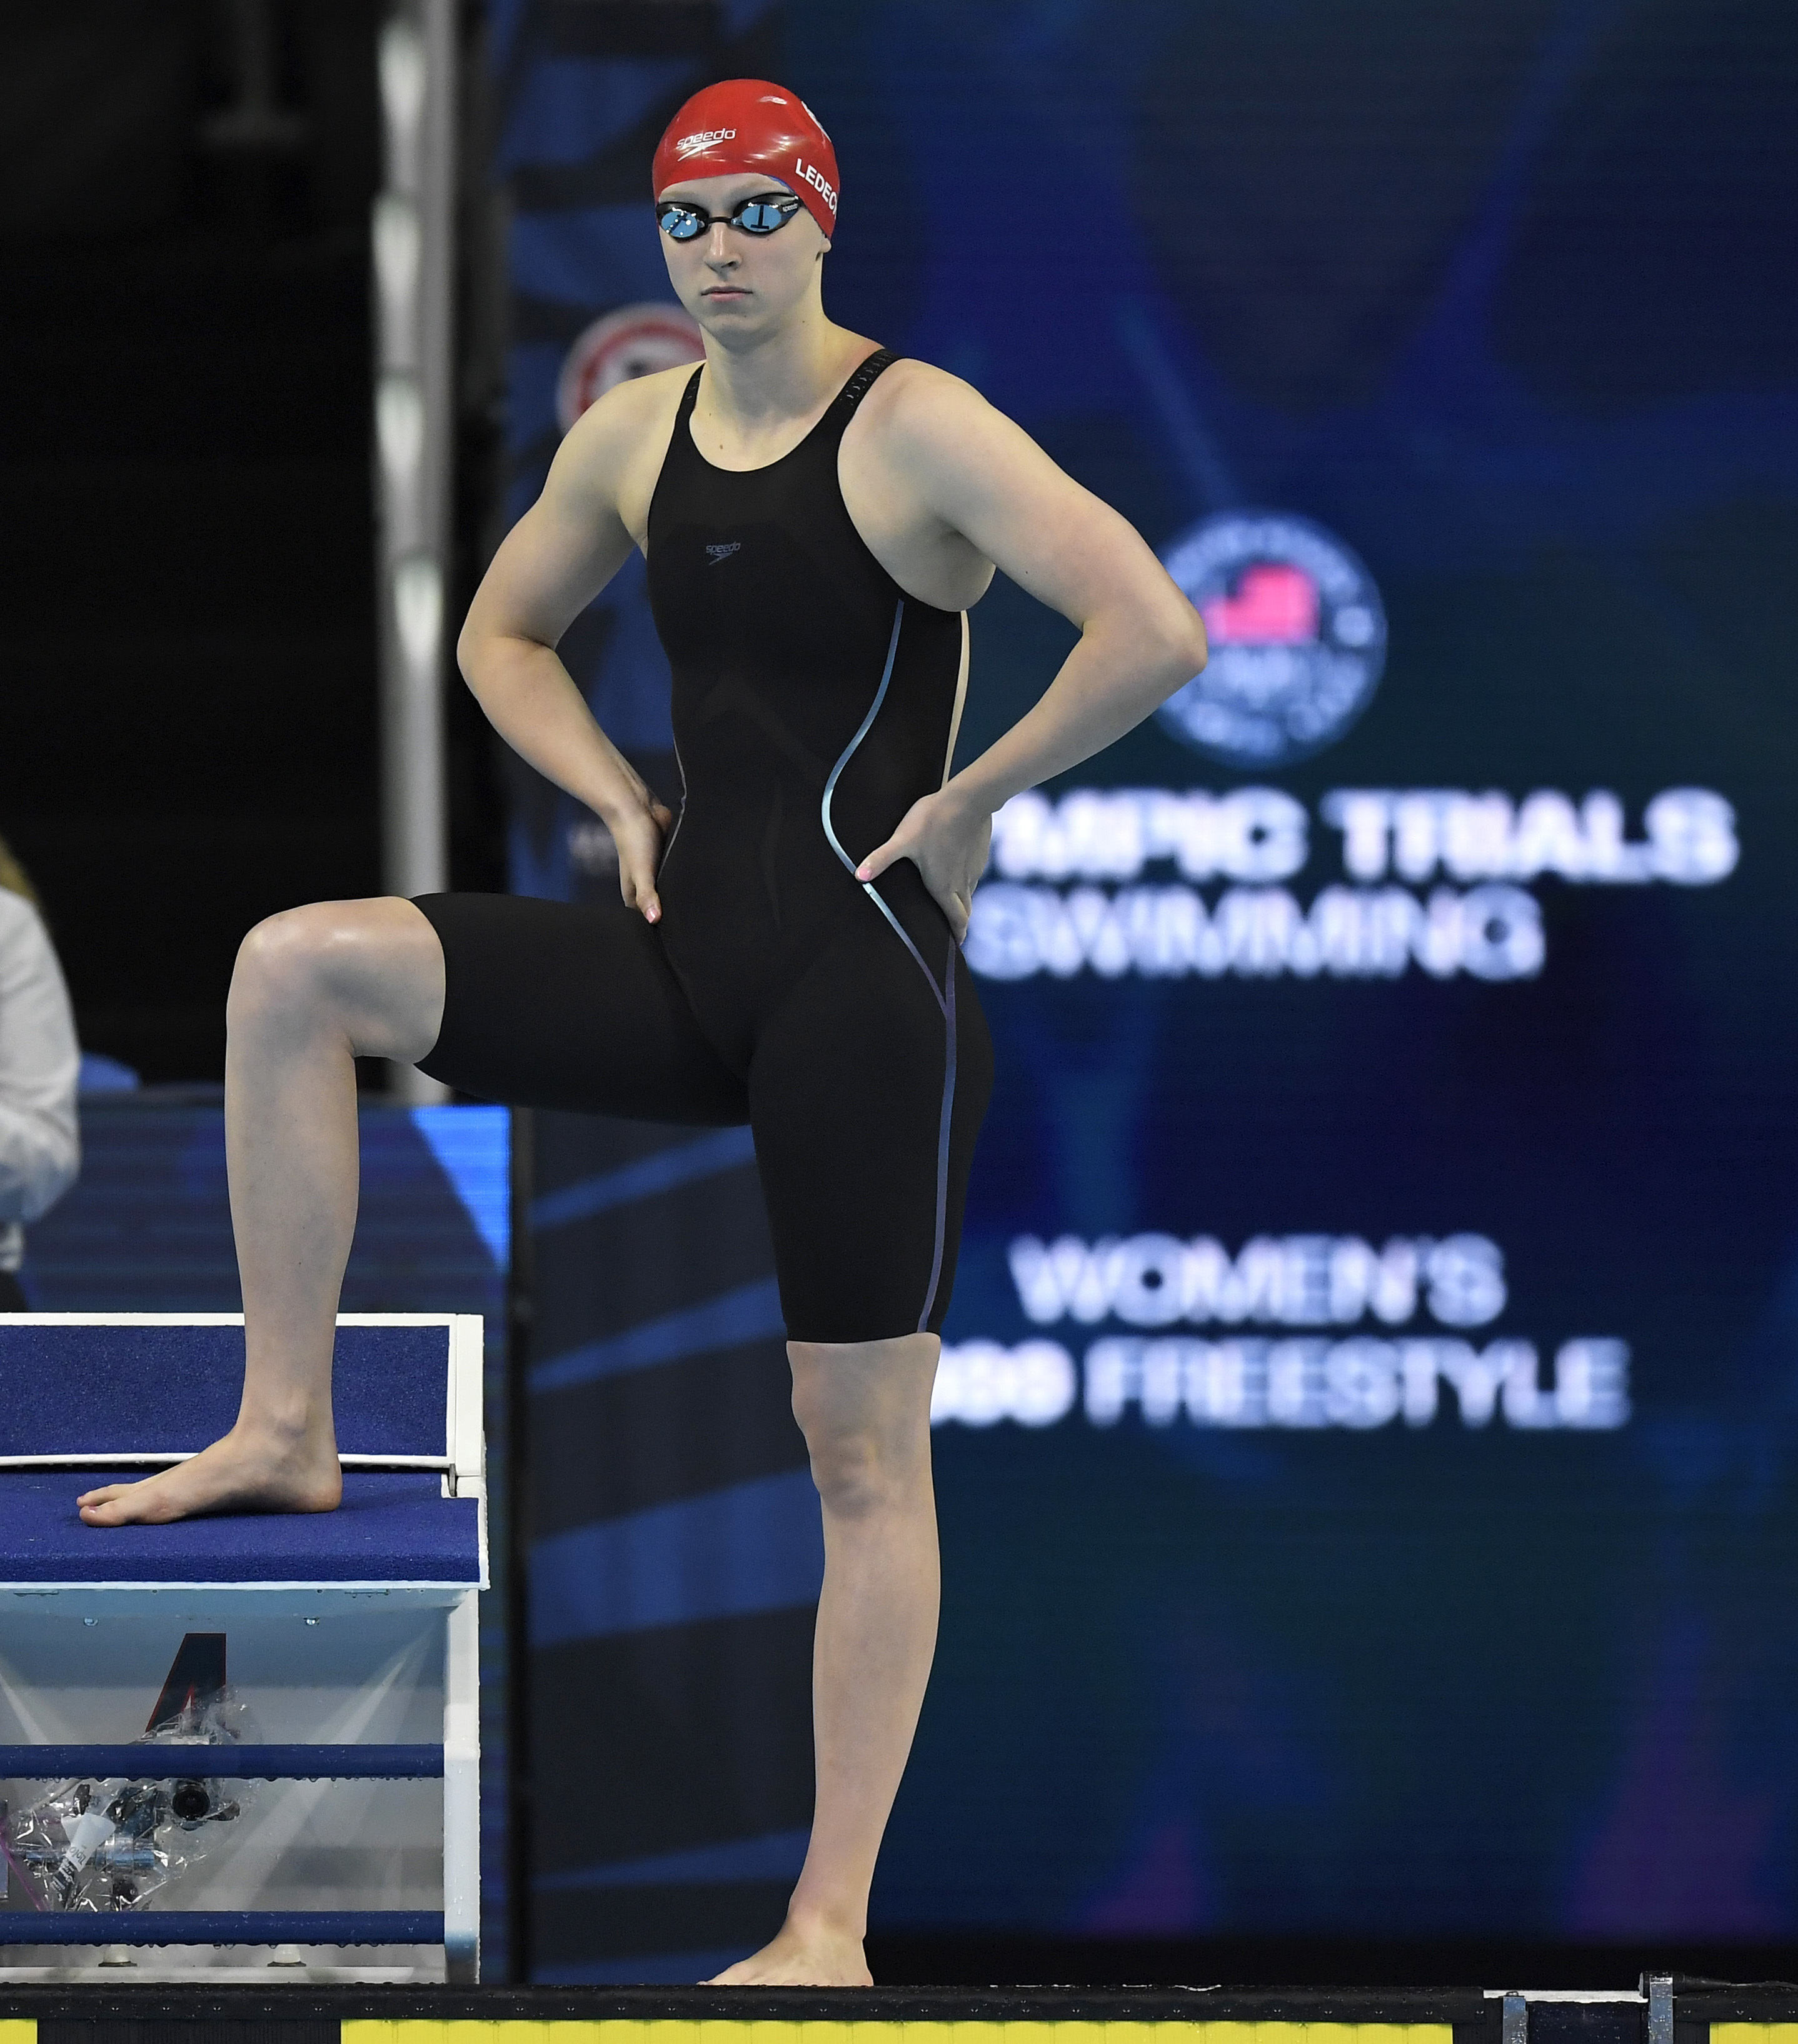 Katie Ledecky waits for the start of the women's 800-meter freestyle final at the U.S. Olympic swimming trials, Saturday, July 2, 2016, in Omaha, Neb. Ledecky won the race. (AP Photo/Mark J. Terrill)